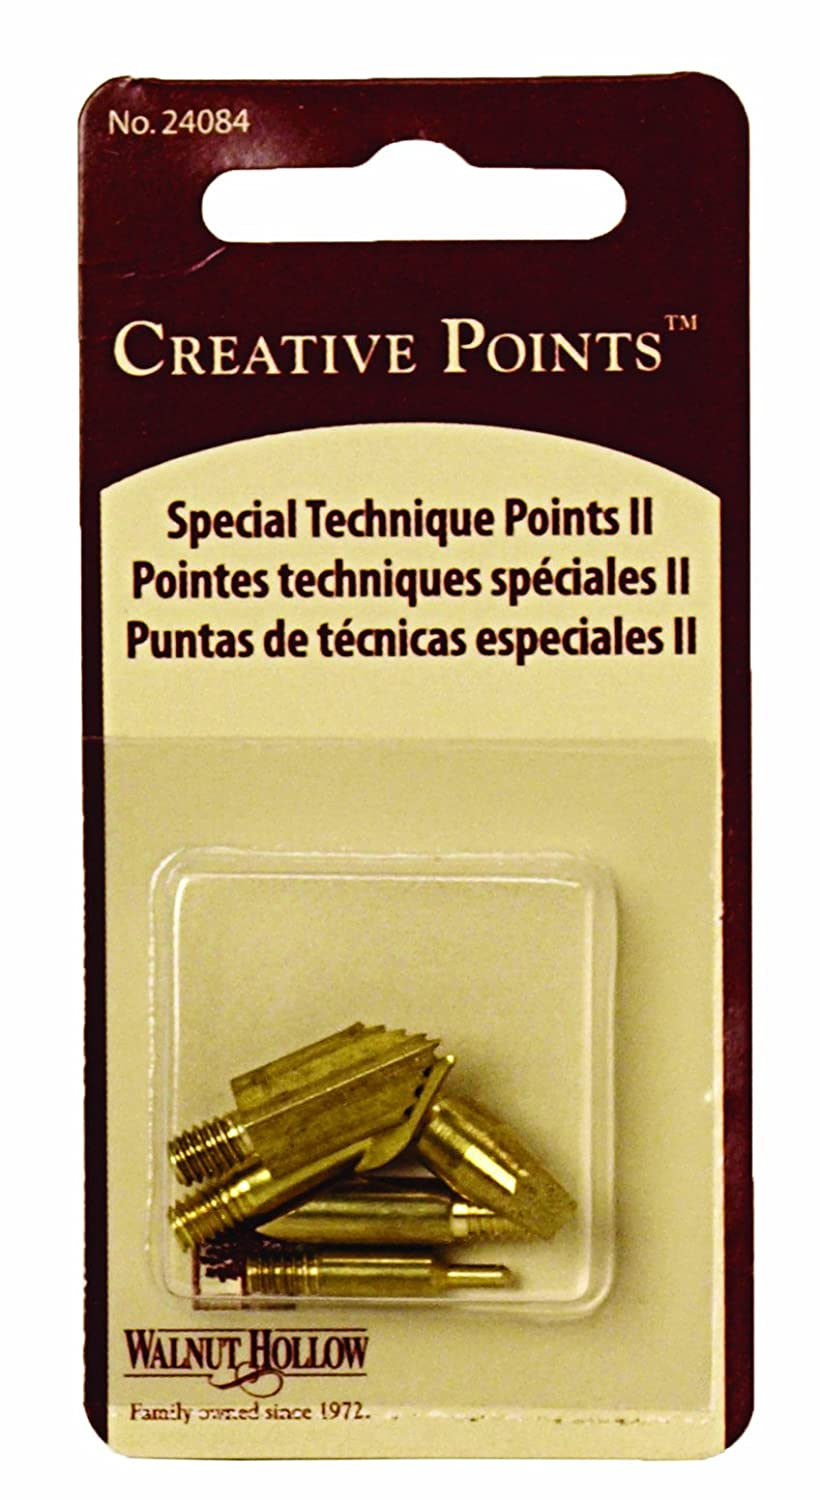 Walnut Hollow Replacement Points Tips for Woodburners and Hot Tools Set No.2 24084